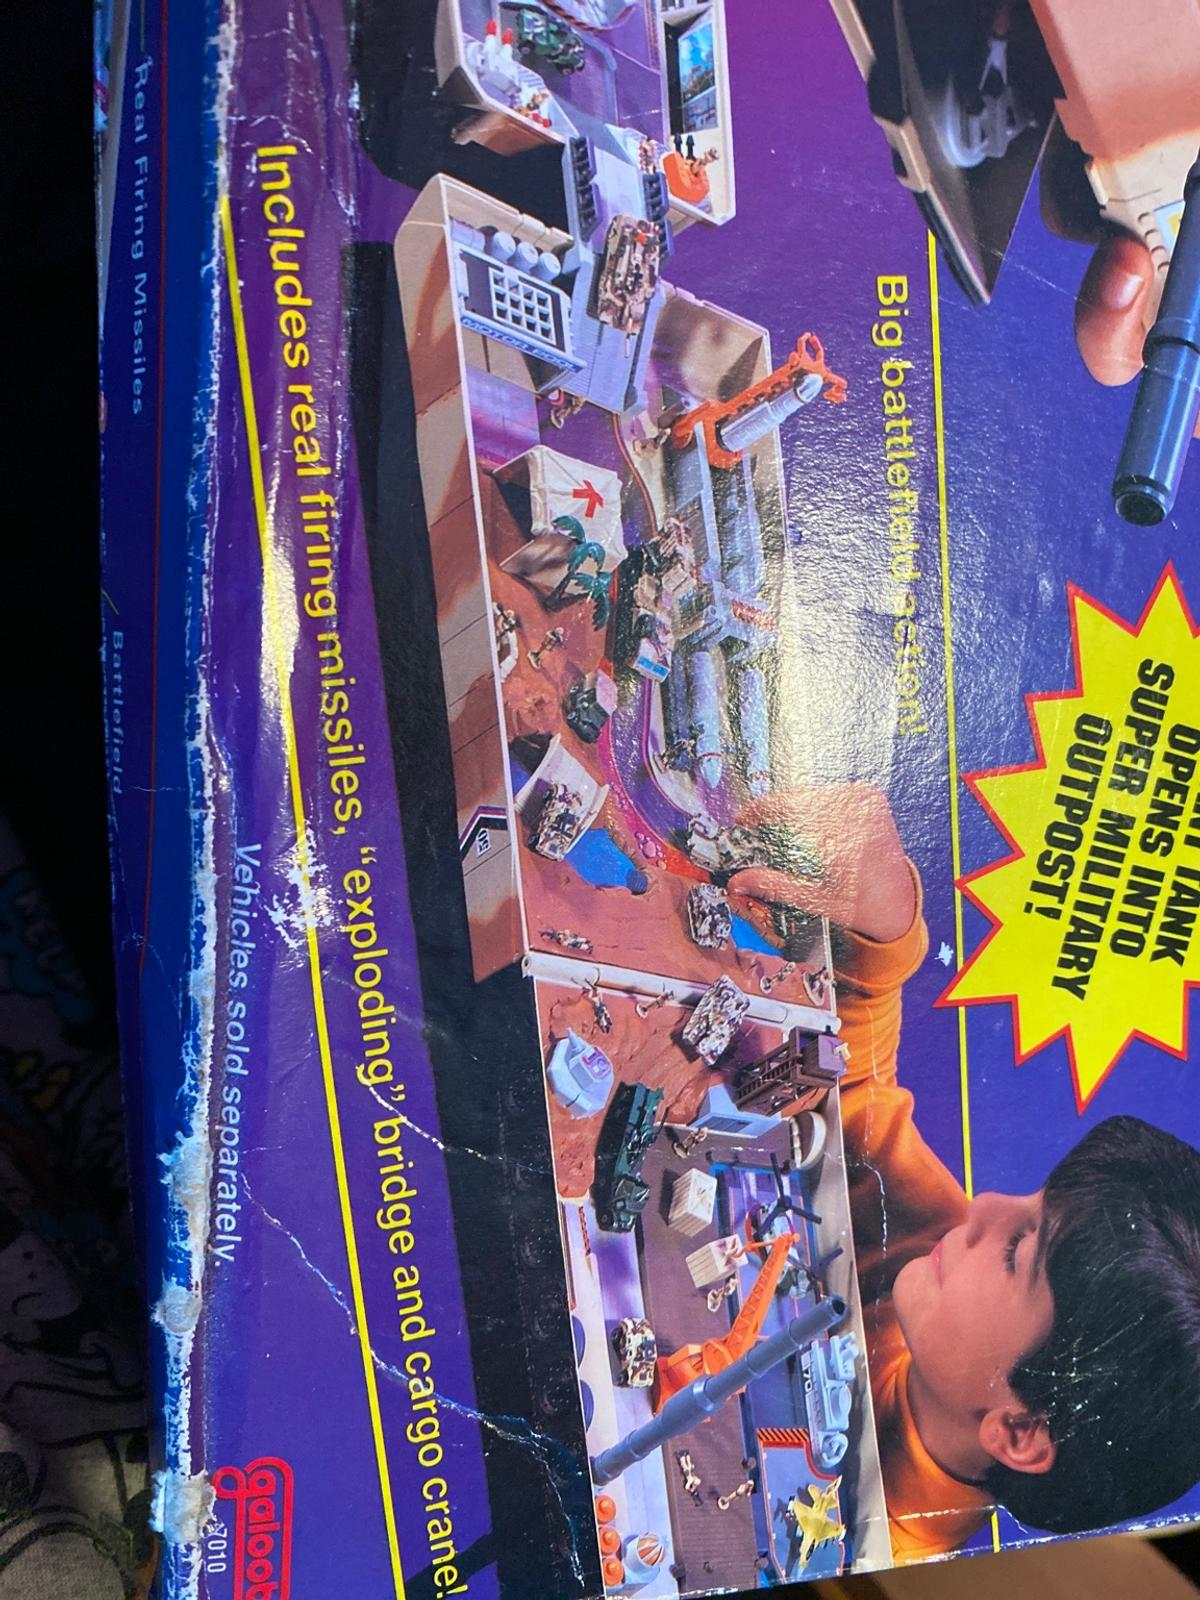 Comes accessories but no micro machines really good play set hours of fun box a little tacky but is because of its age